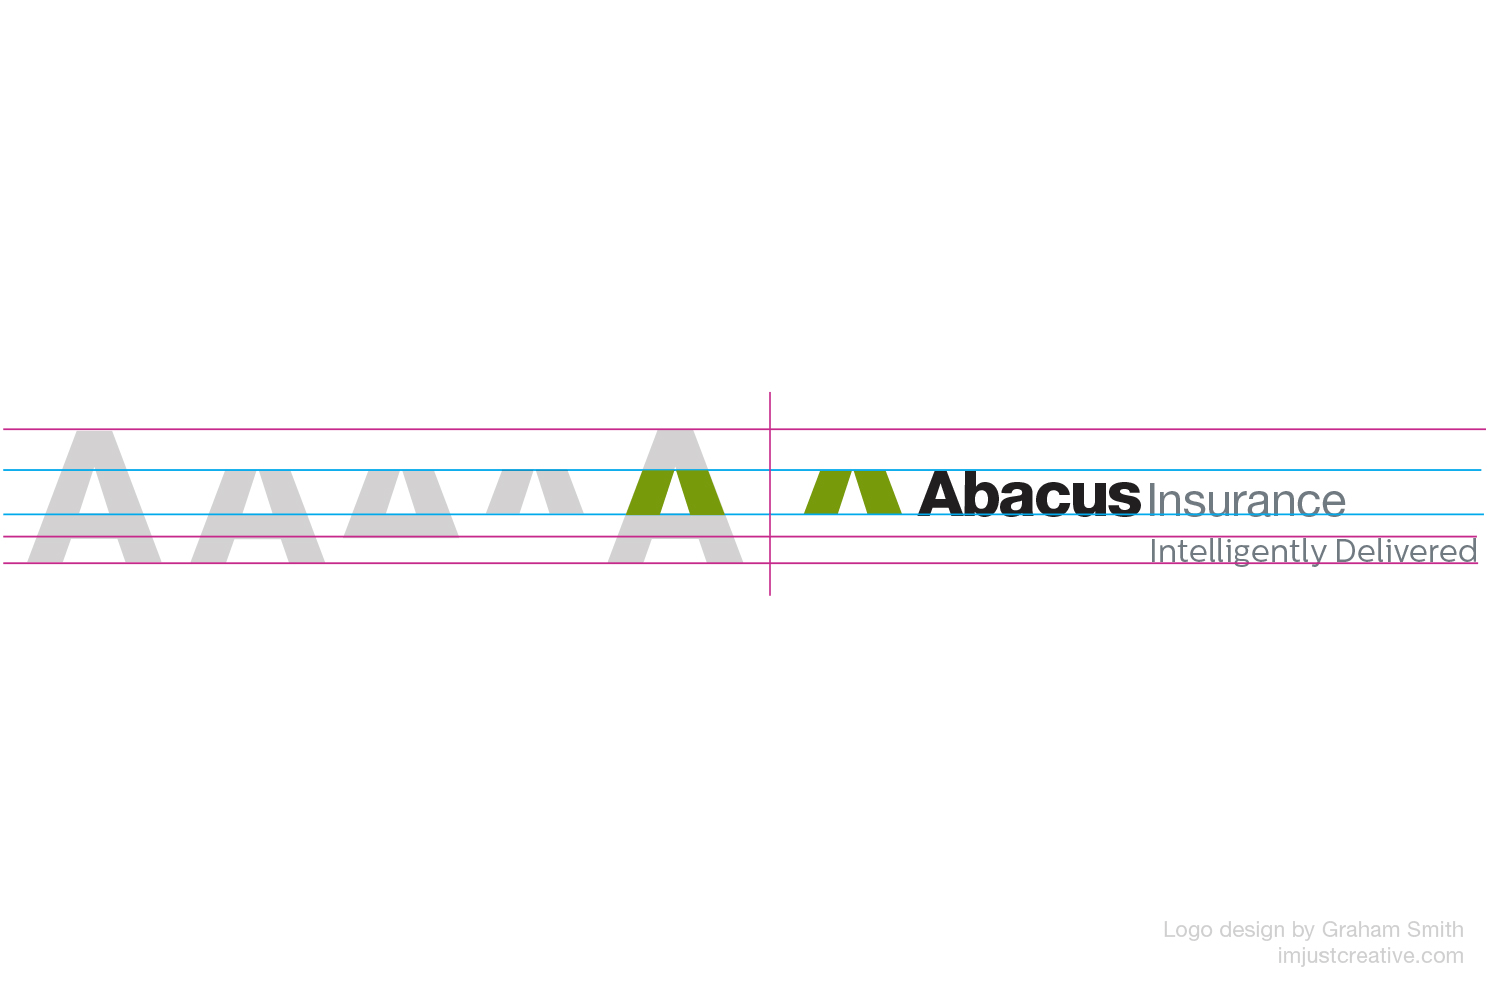 Abacus logo desconstructed